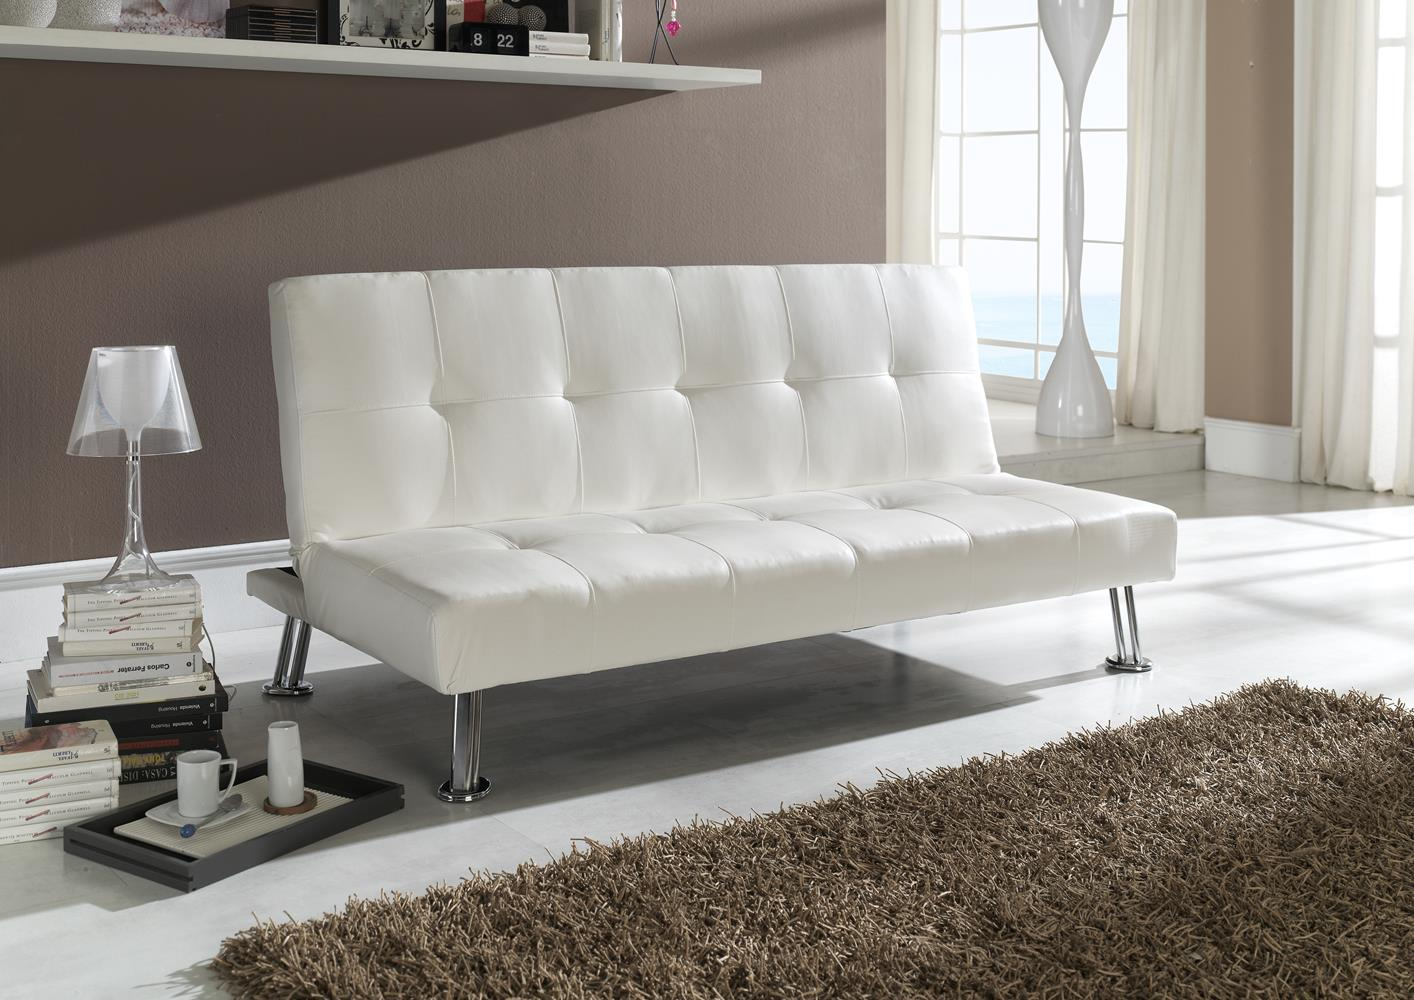 acheter votre banquette clic clac en pvc blanc capiton e chez simeuble. Black Bedroom Furniture Sets. Home Design Ideas